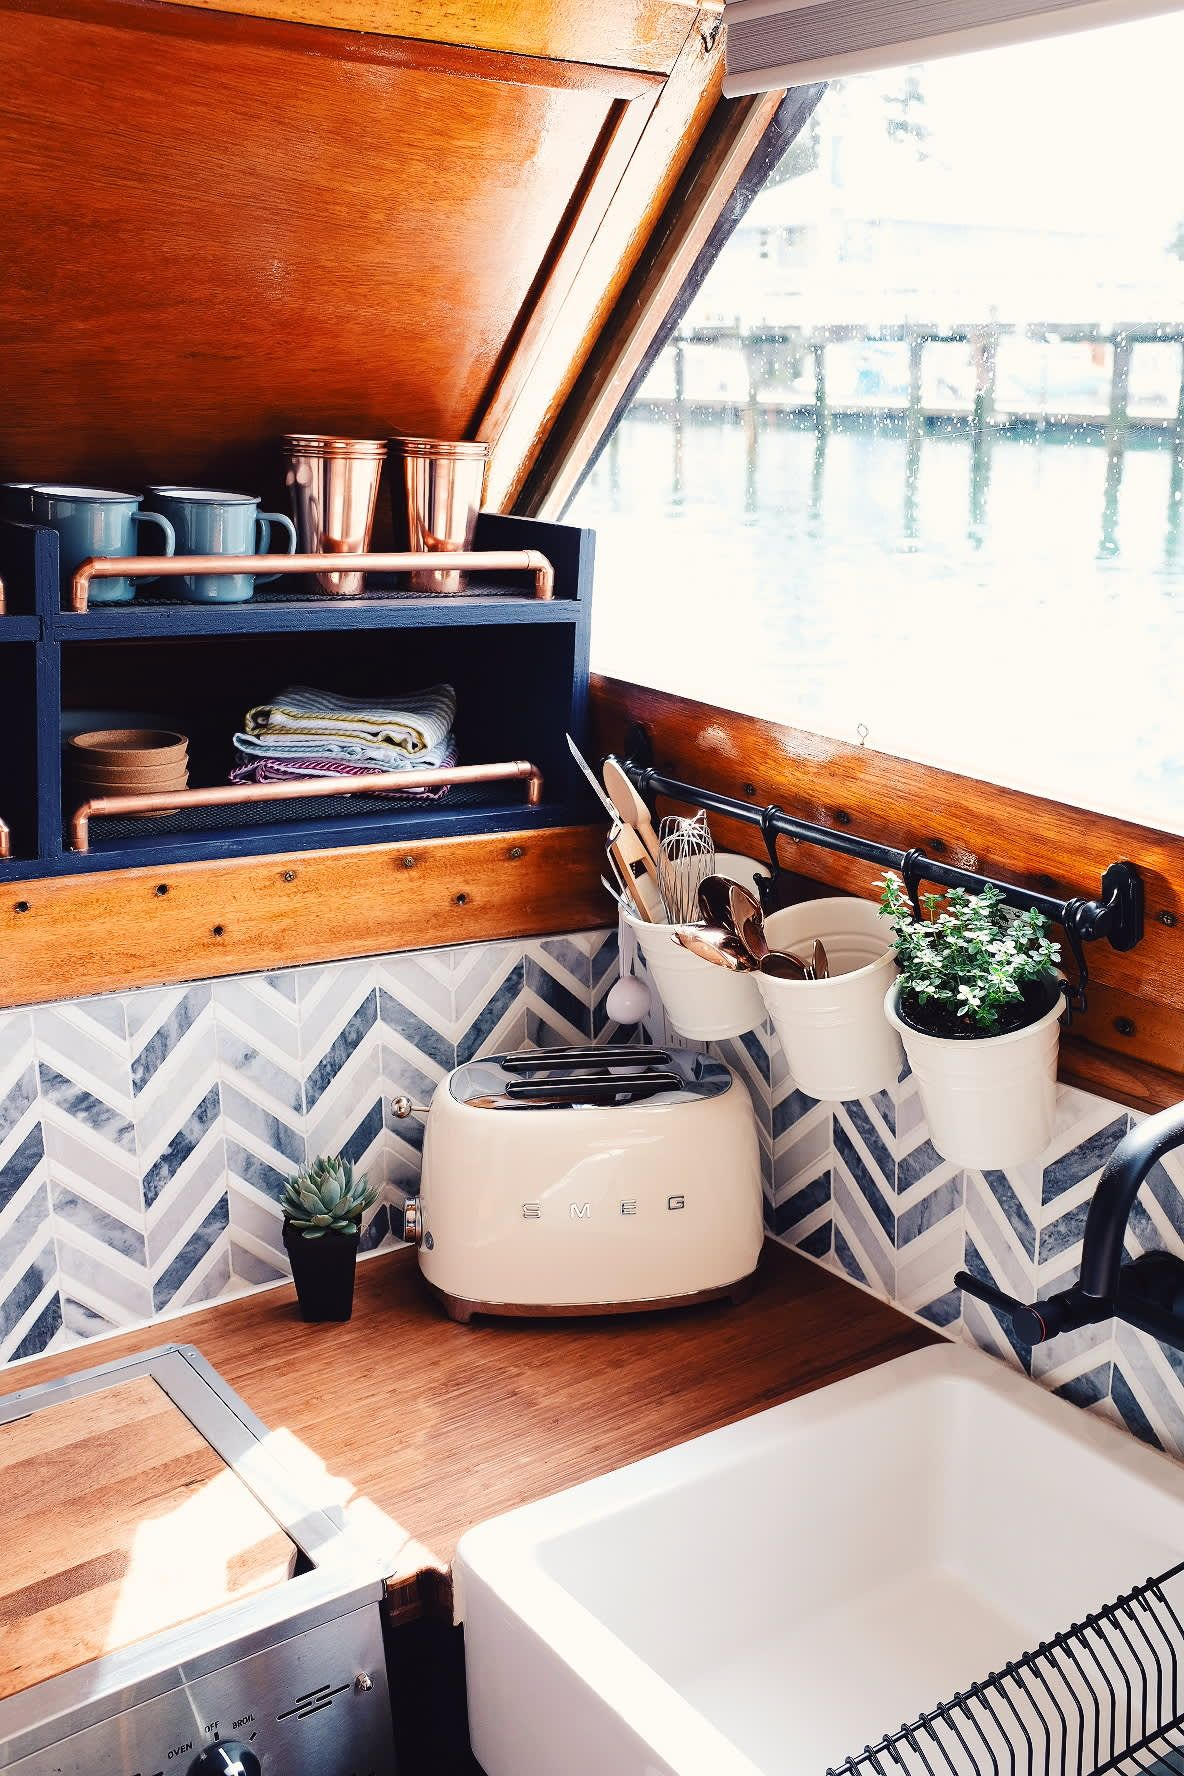 This Houseboat Has One of the Cutest Tiny House Kitchens #tinyhousestorage